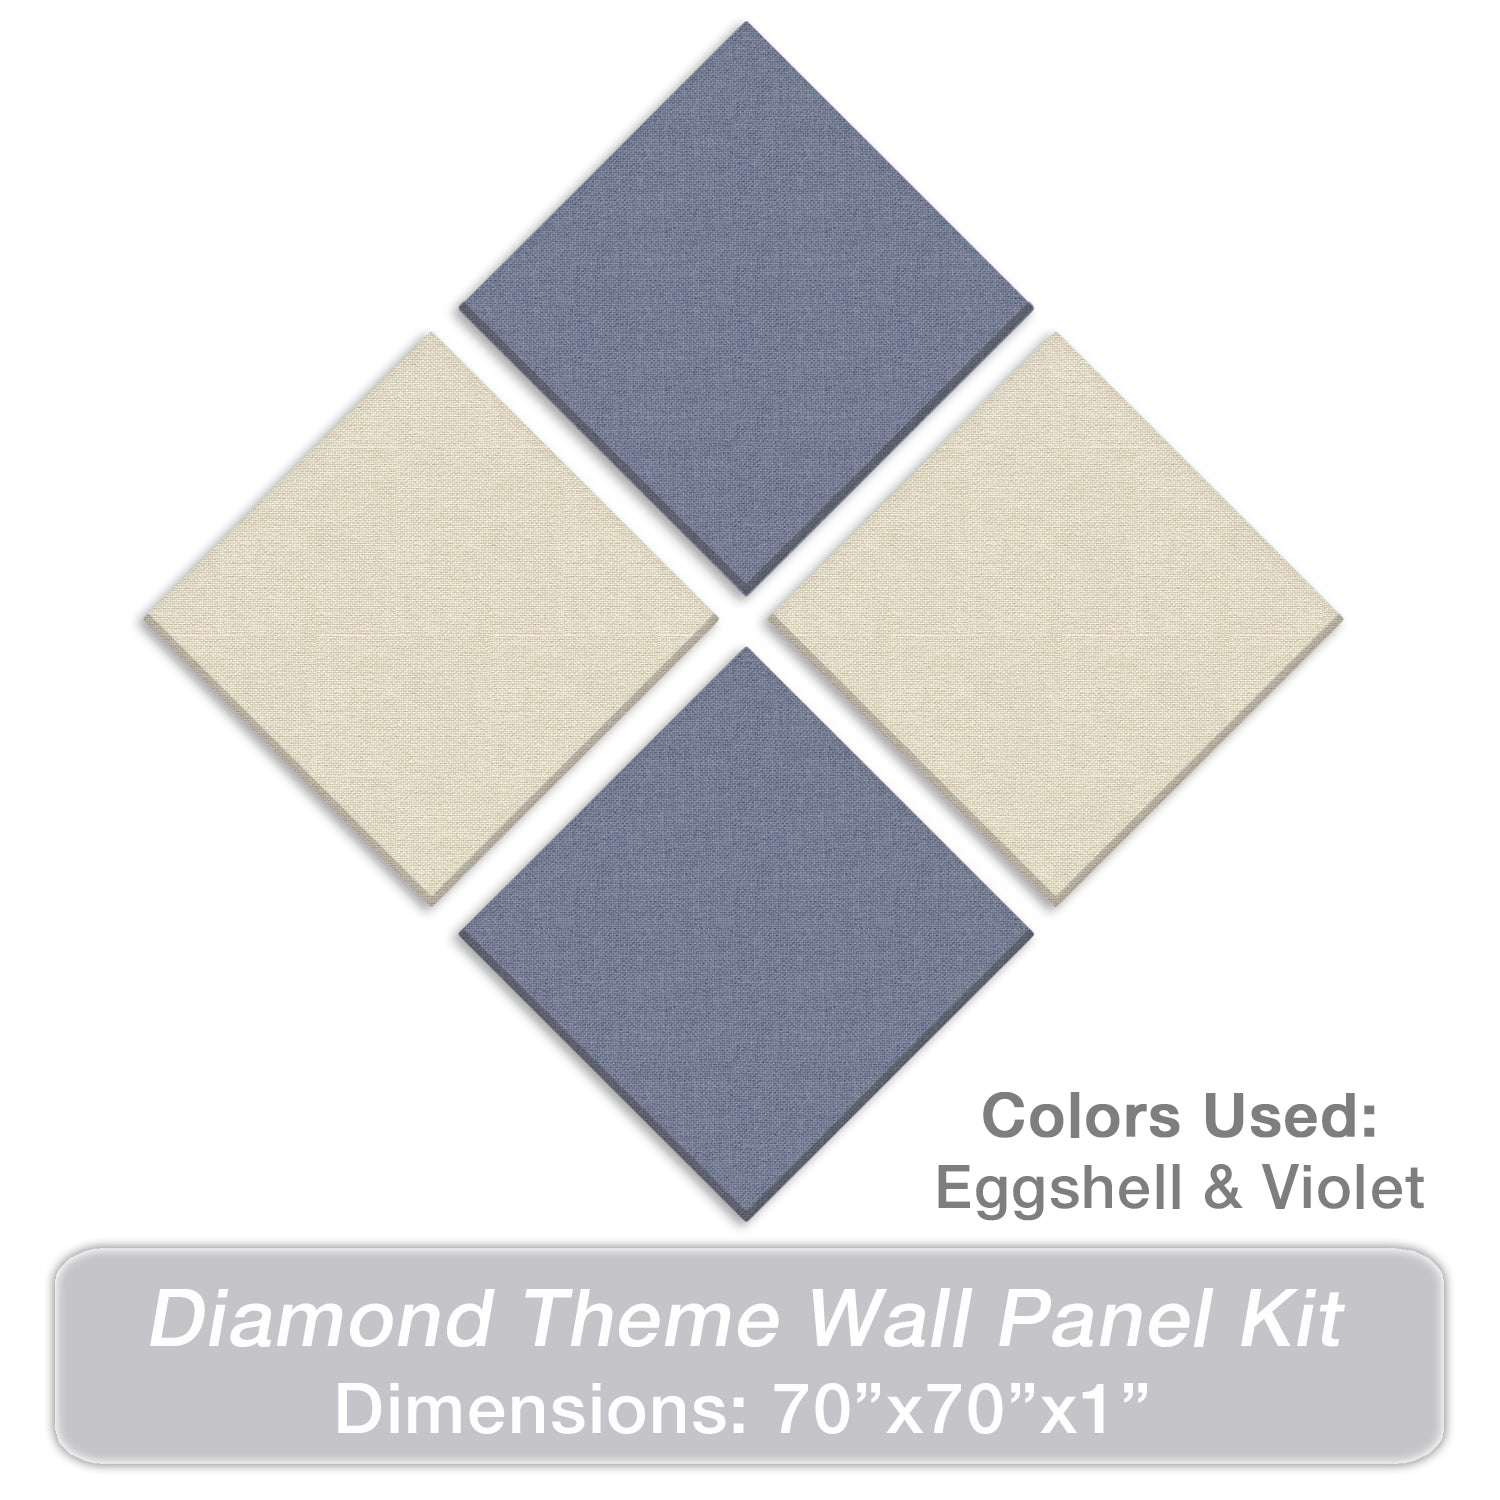 "ADW Acoustic Panels 70"" X 70"" X 1"" Diamond Theme Kit - Quick Easy DIY Install - Various Color Combos"